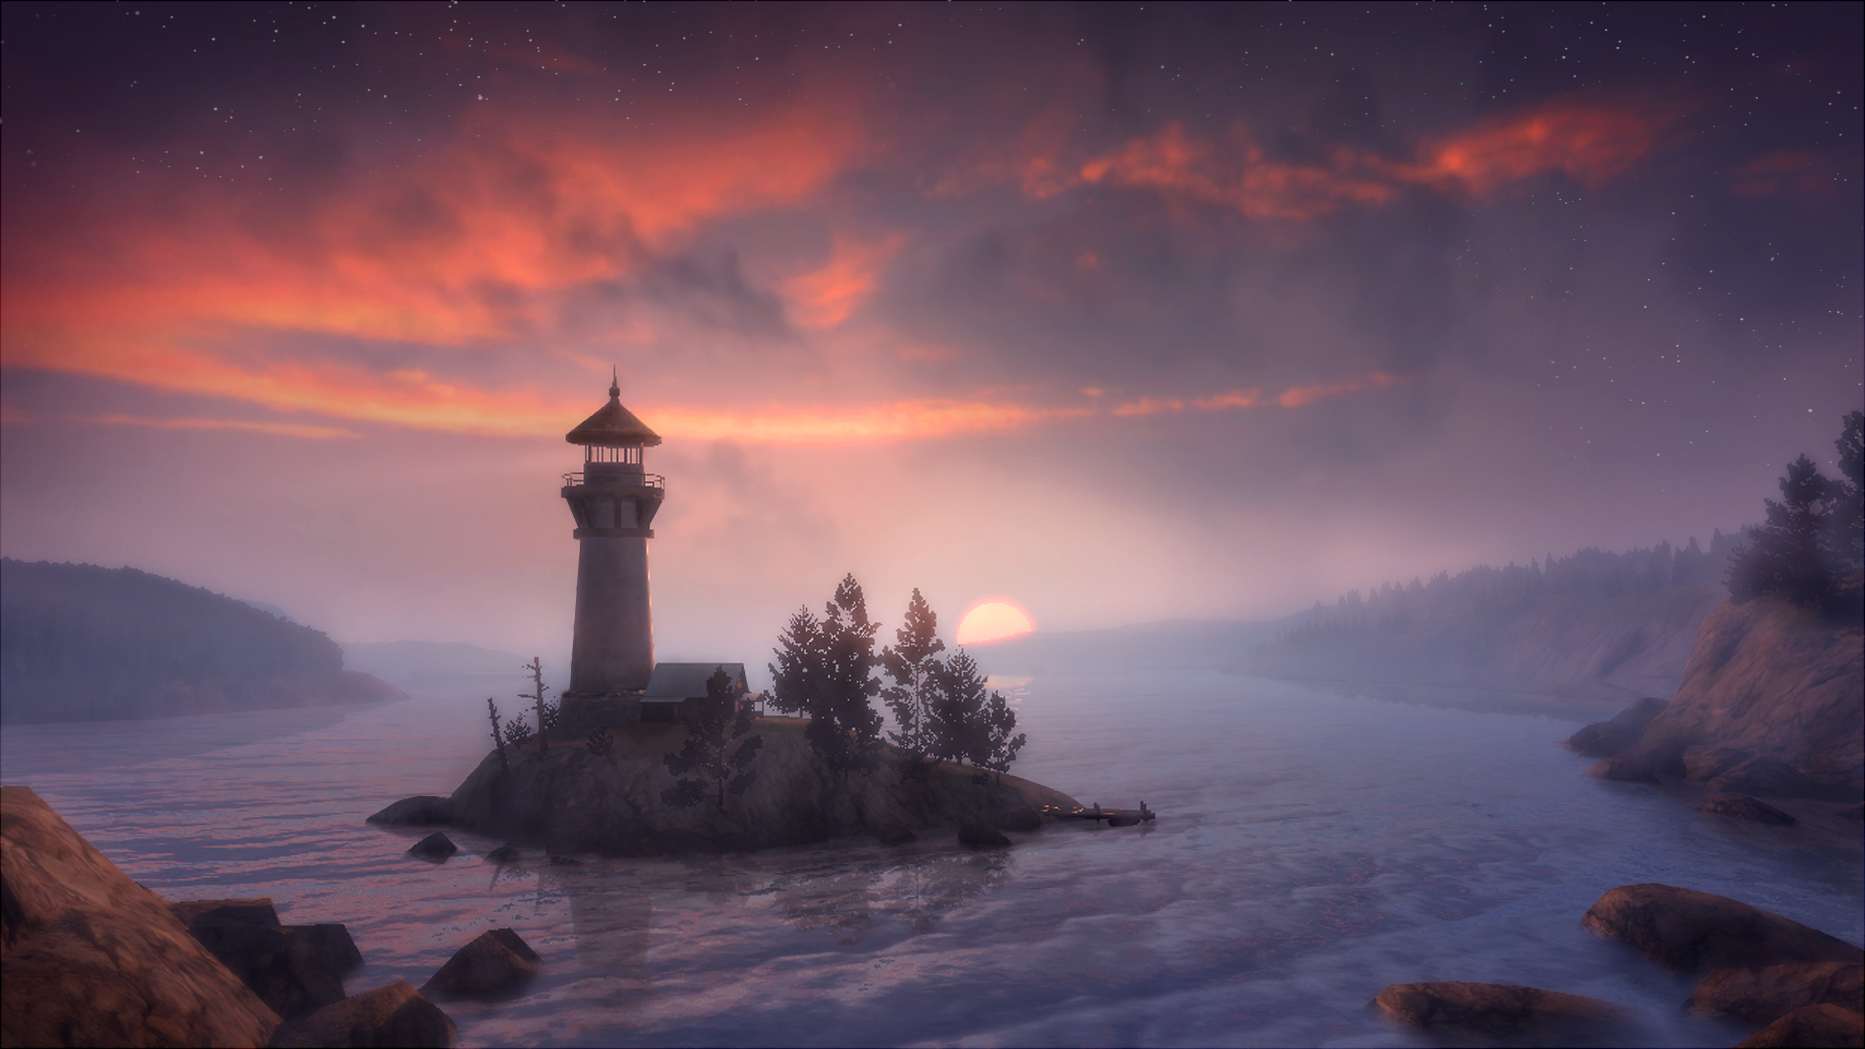 UDK Scene Lighthouse - UDK Scene | Lighthouse